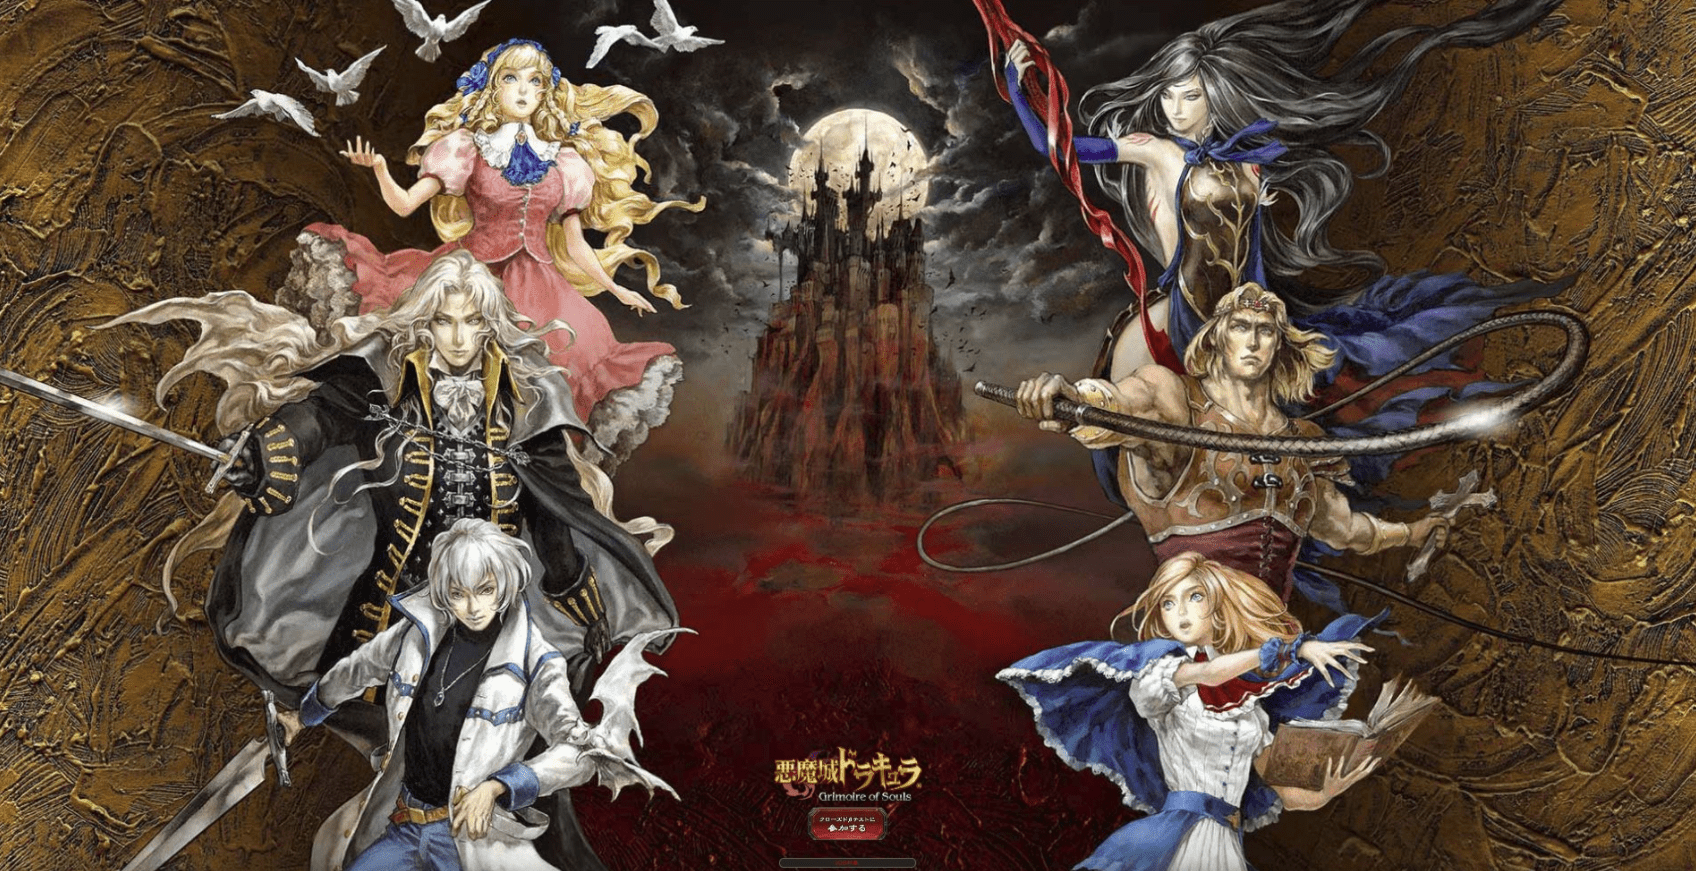 Konami Announces New Castlevania Game, But It's Not What You'd Think